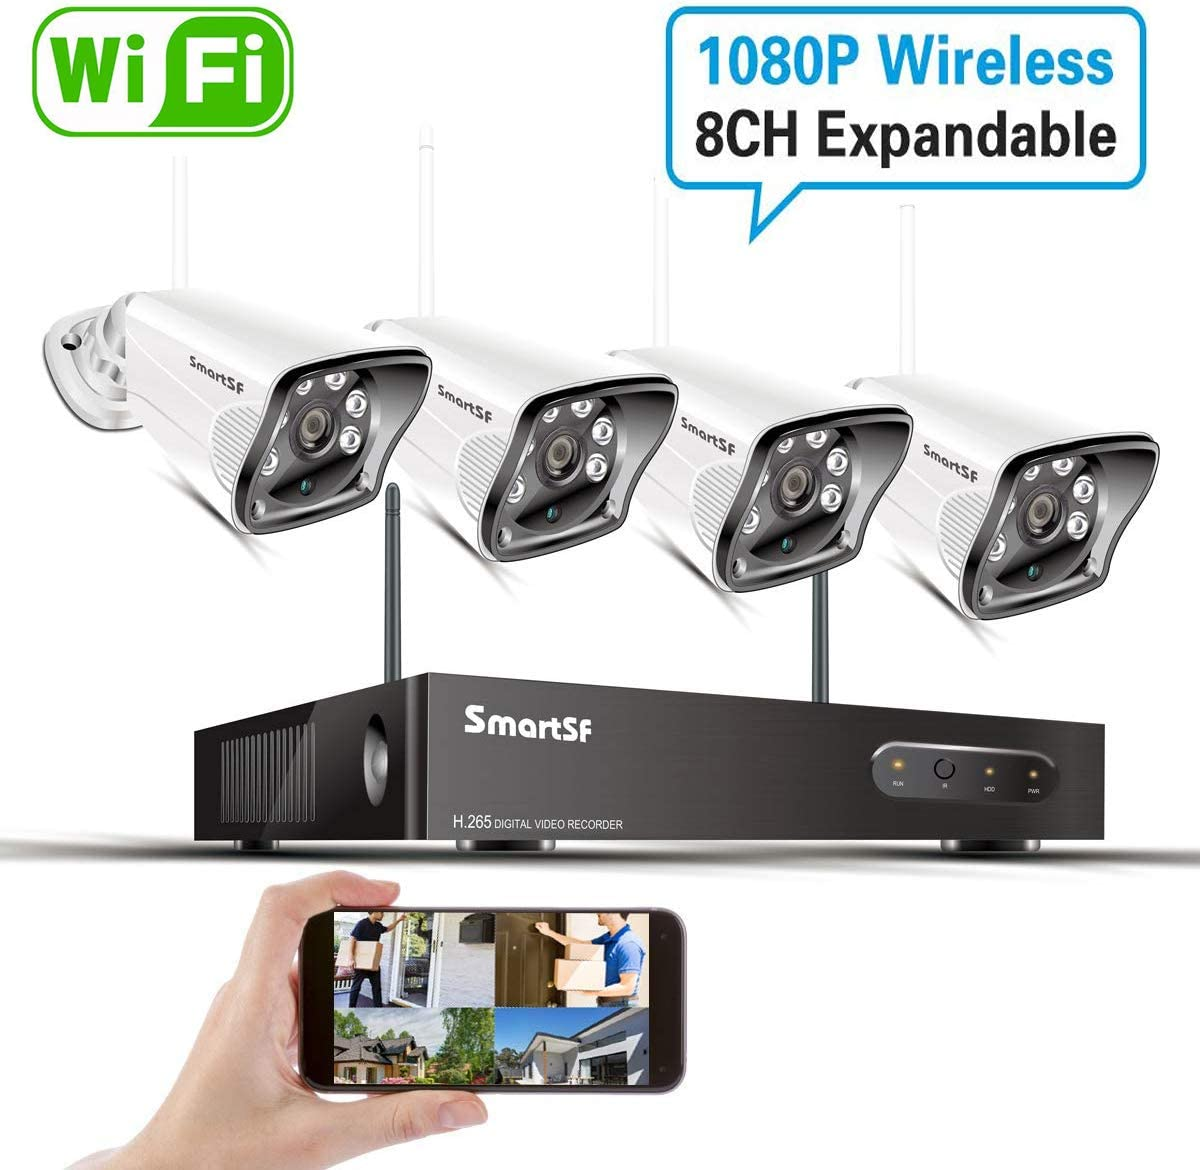 8CH 1080P HD WiFi Security Camera System Wireless,2.0MP CCTV NVR Surveillance System, Night Vision, Weatherproof, Motion Detection, Remote Monitoring